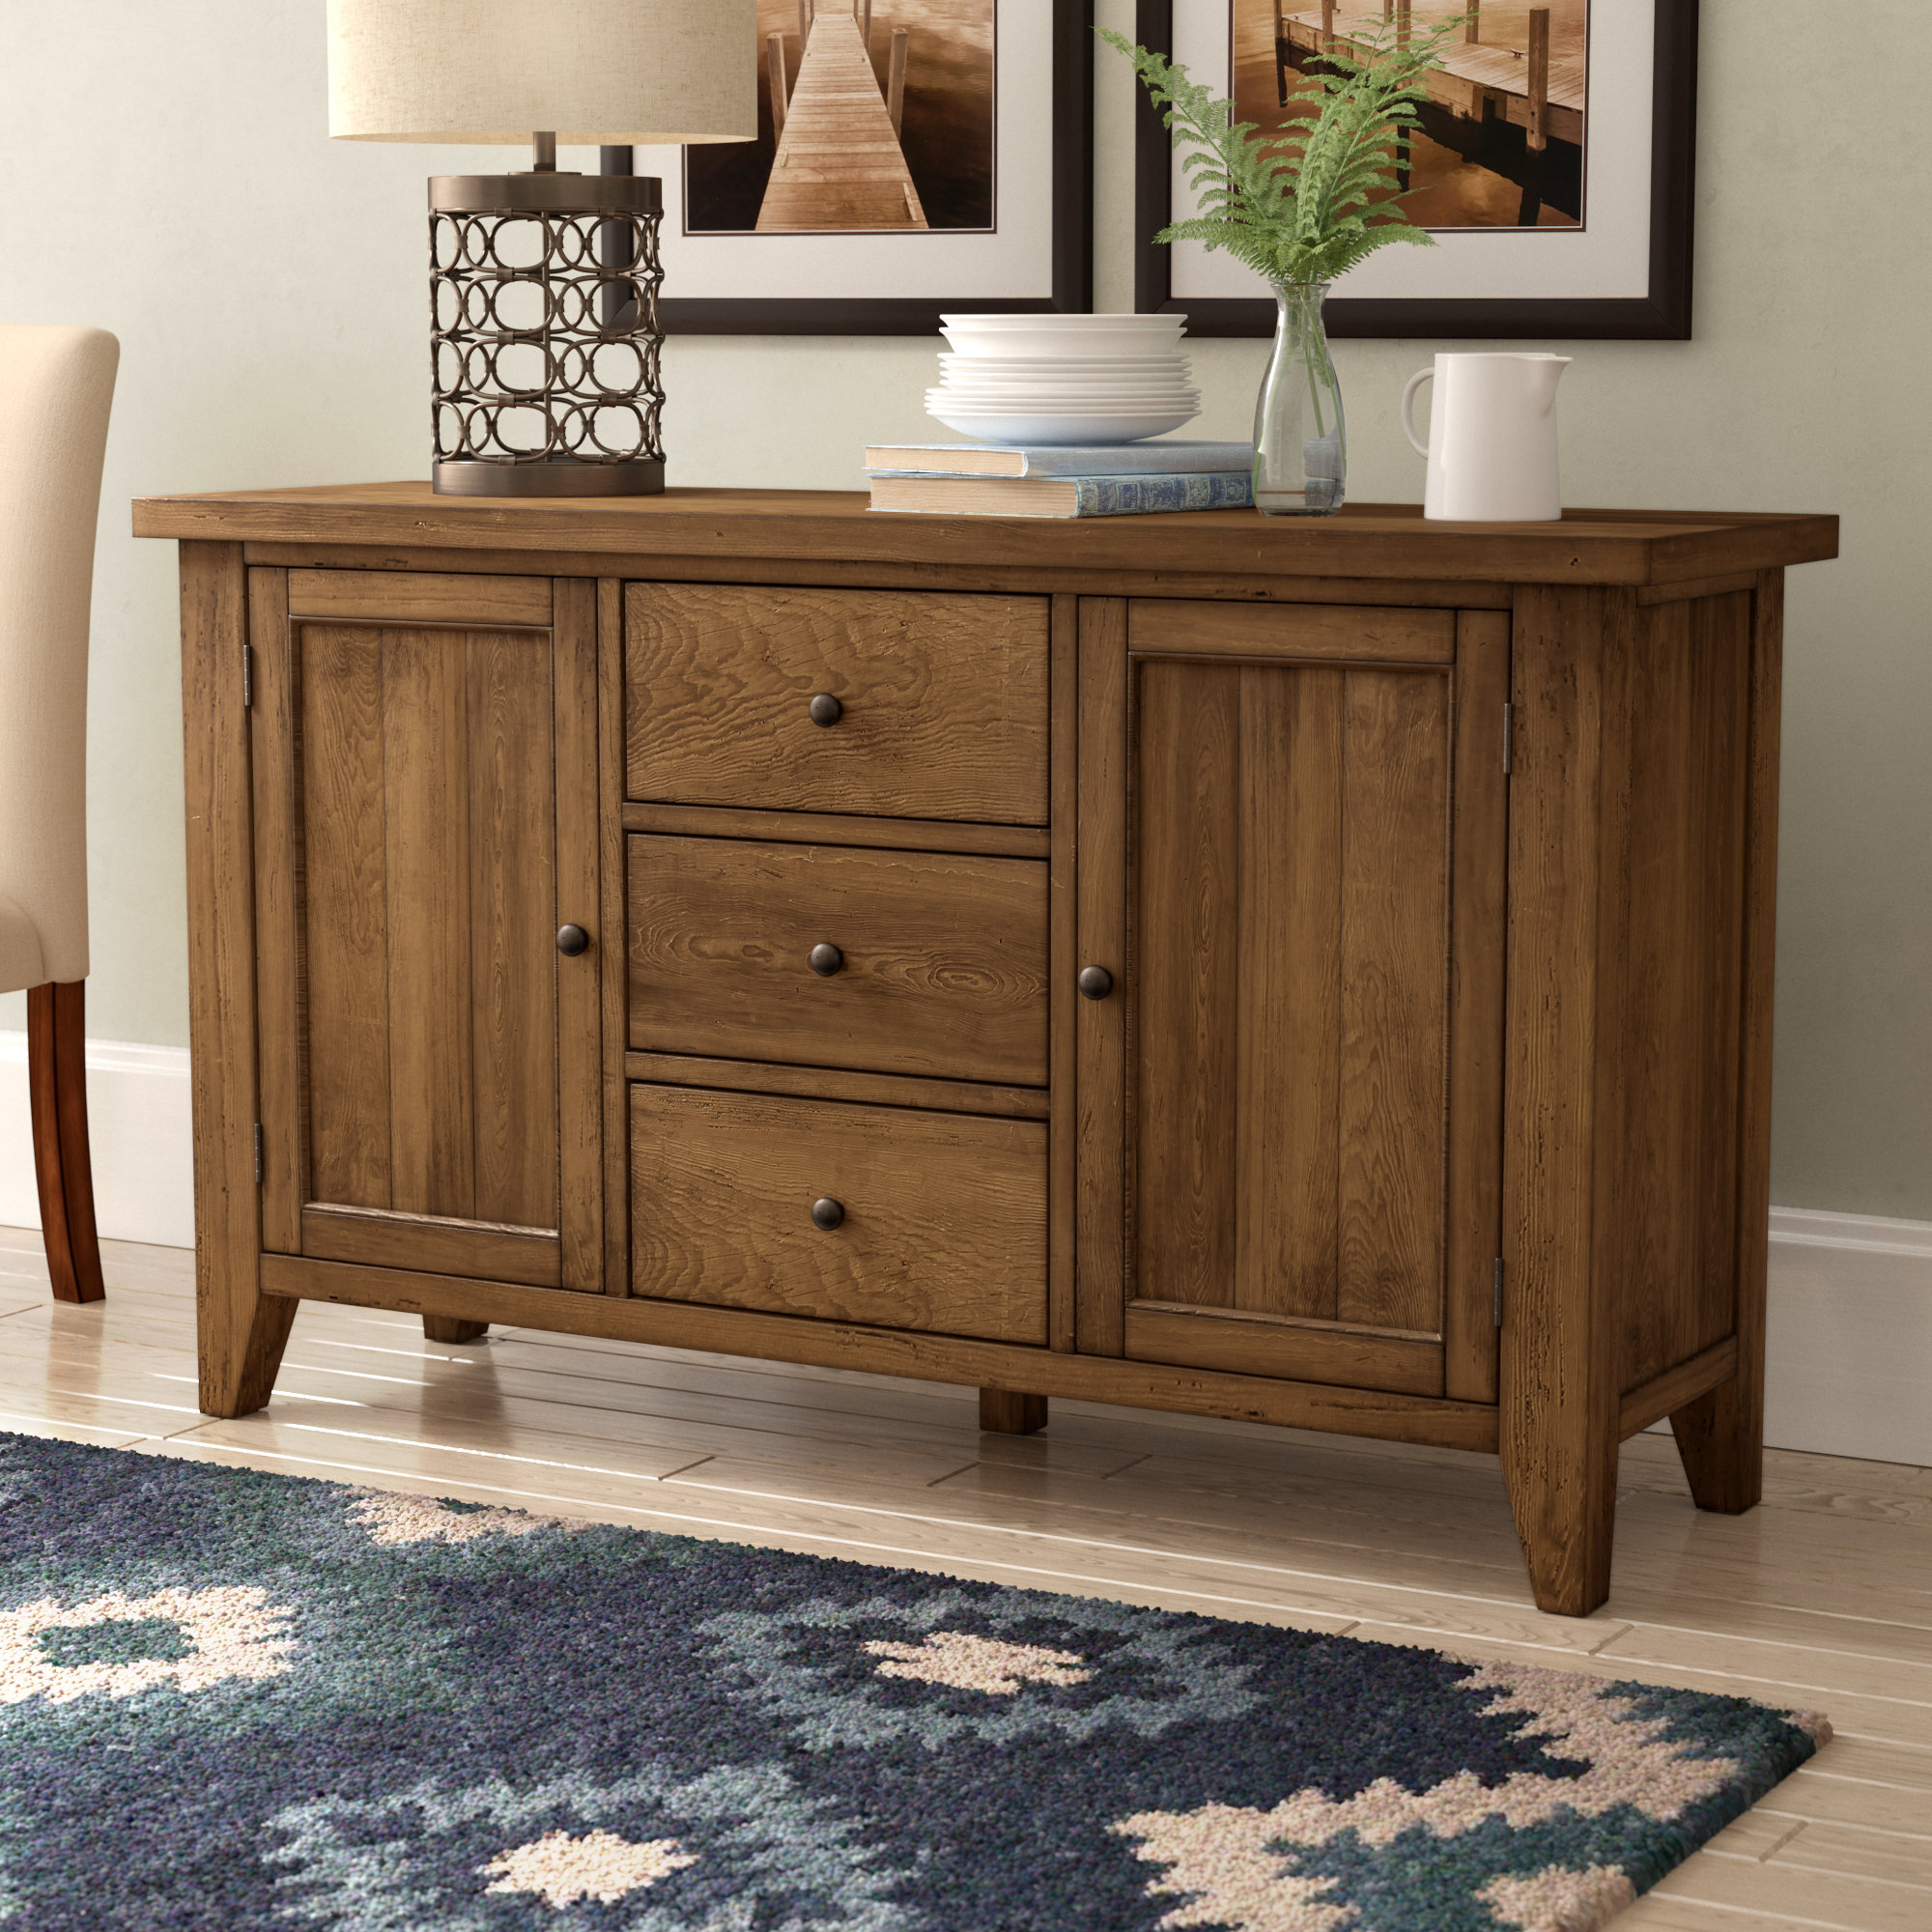 Warkentin Sideboard Intended For Most Popular Whitten Sideboards (View 12 of 20)